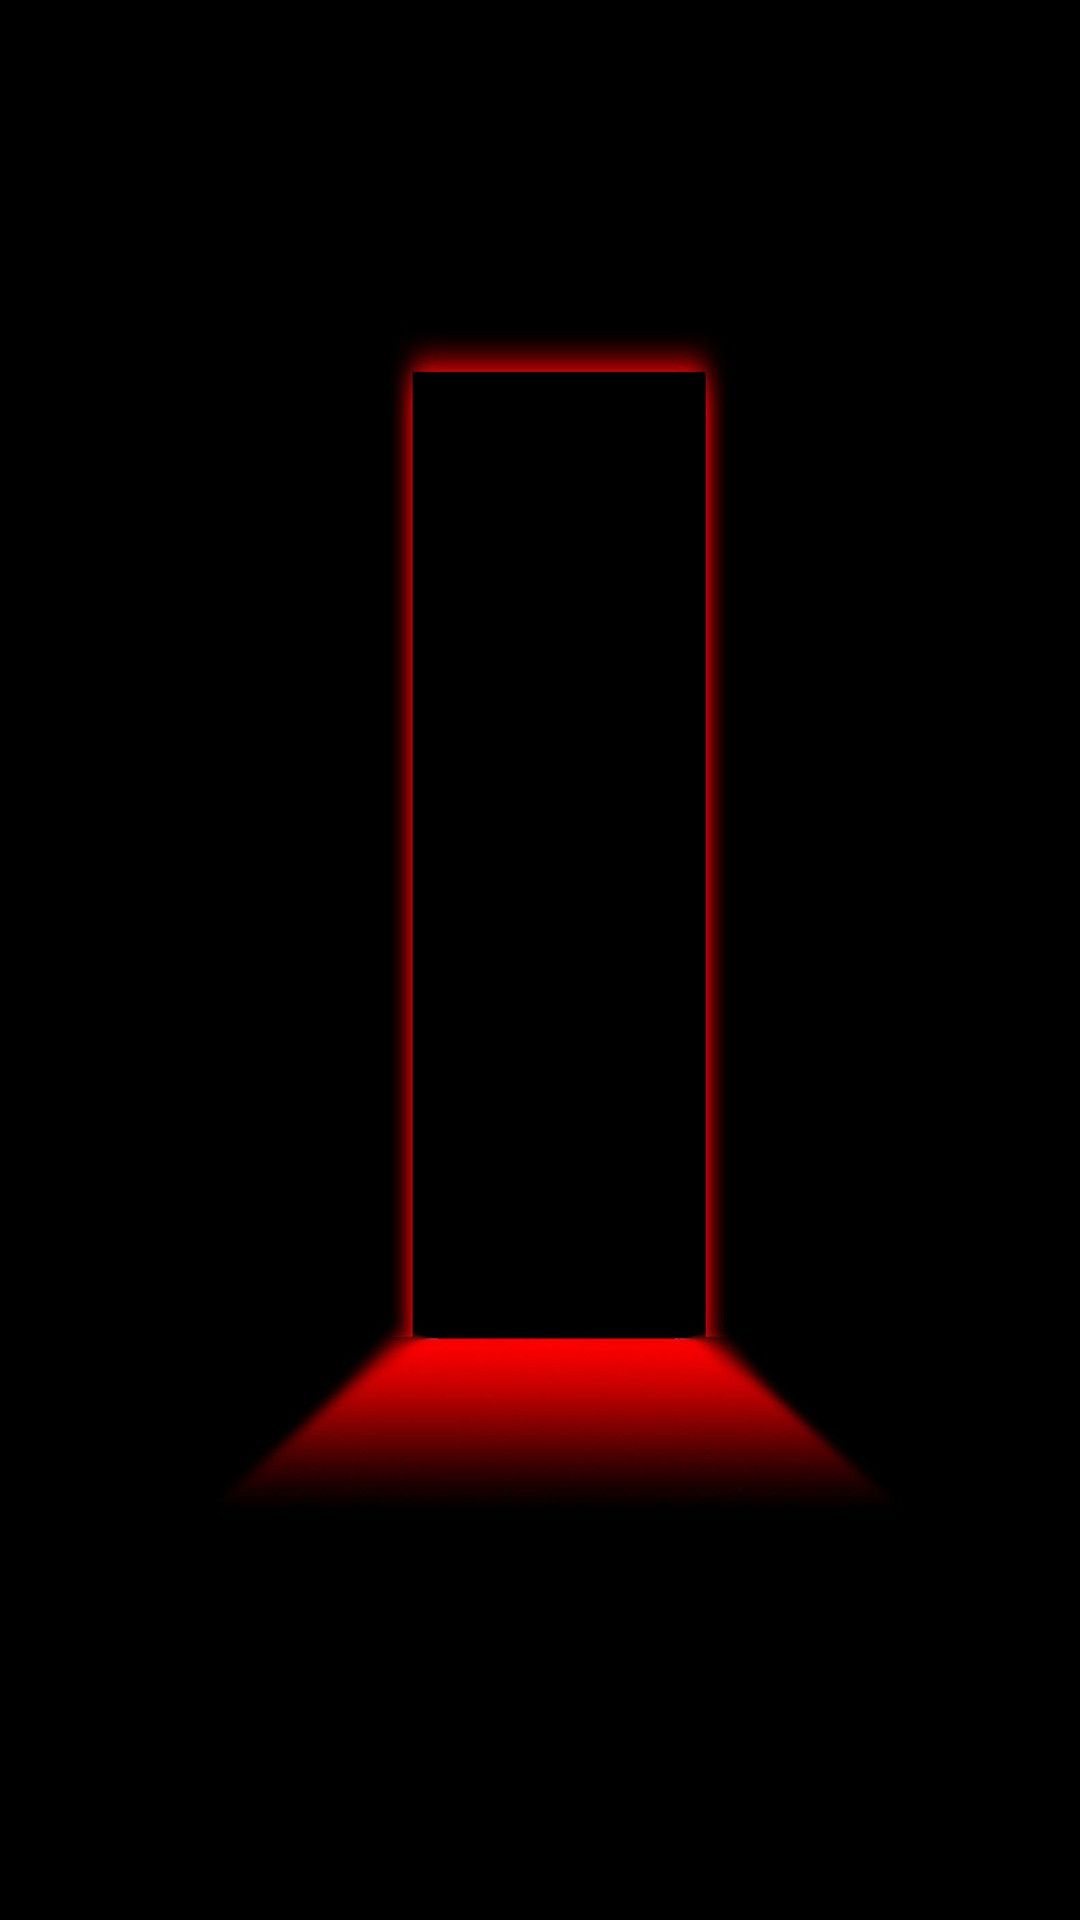 3d Black And Red Iphone Wallpaper Black And Red Minimalist